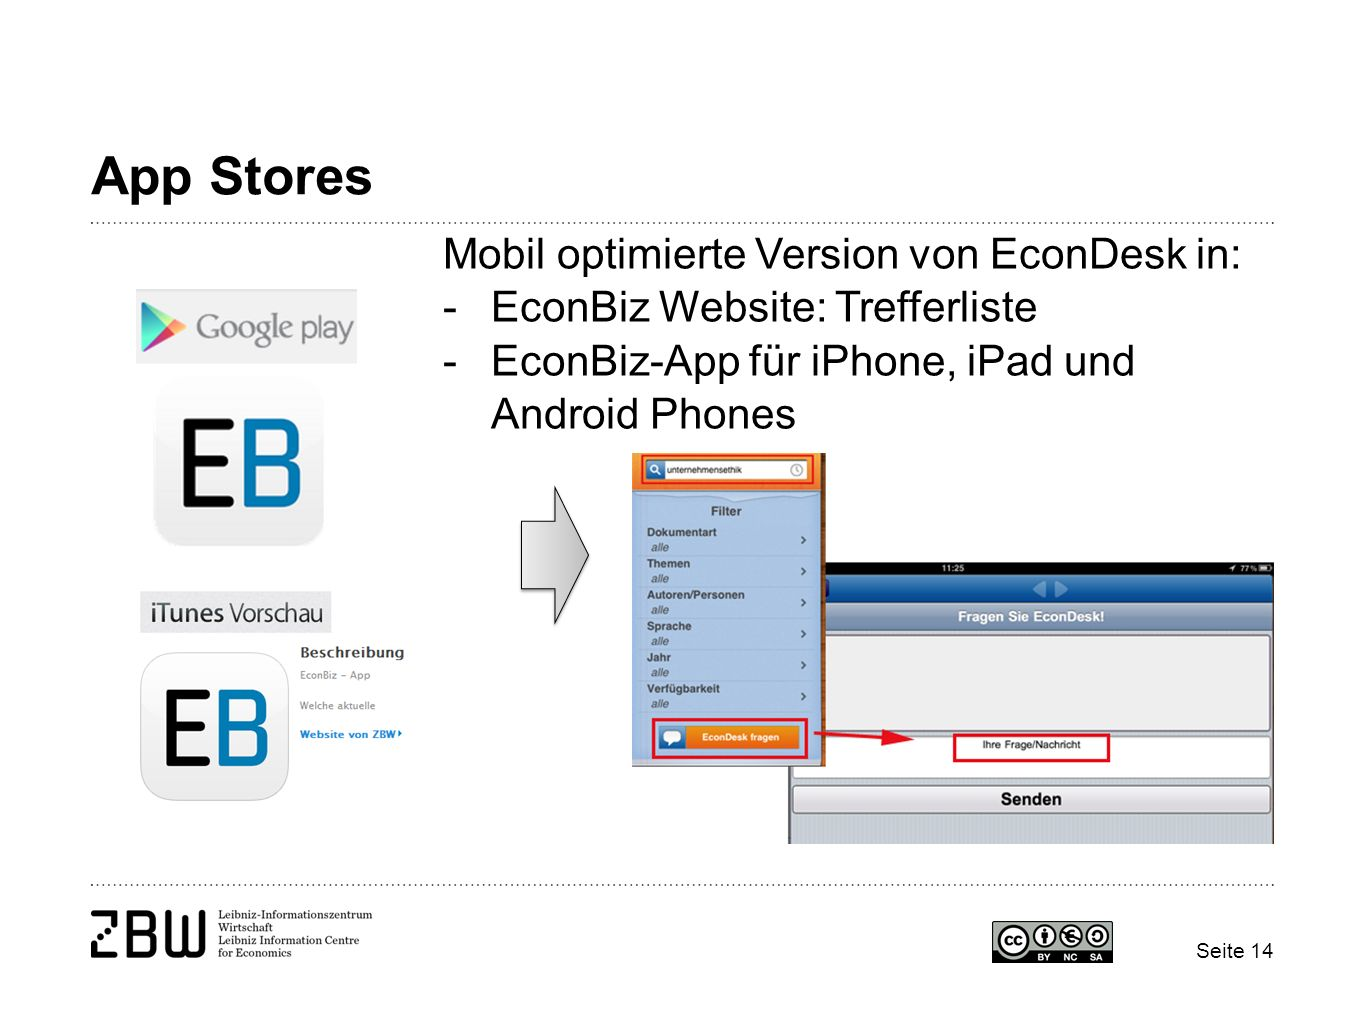 App Stores Mobil optimierte Version von EconDesk in: